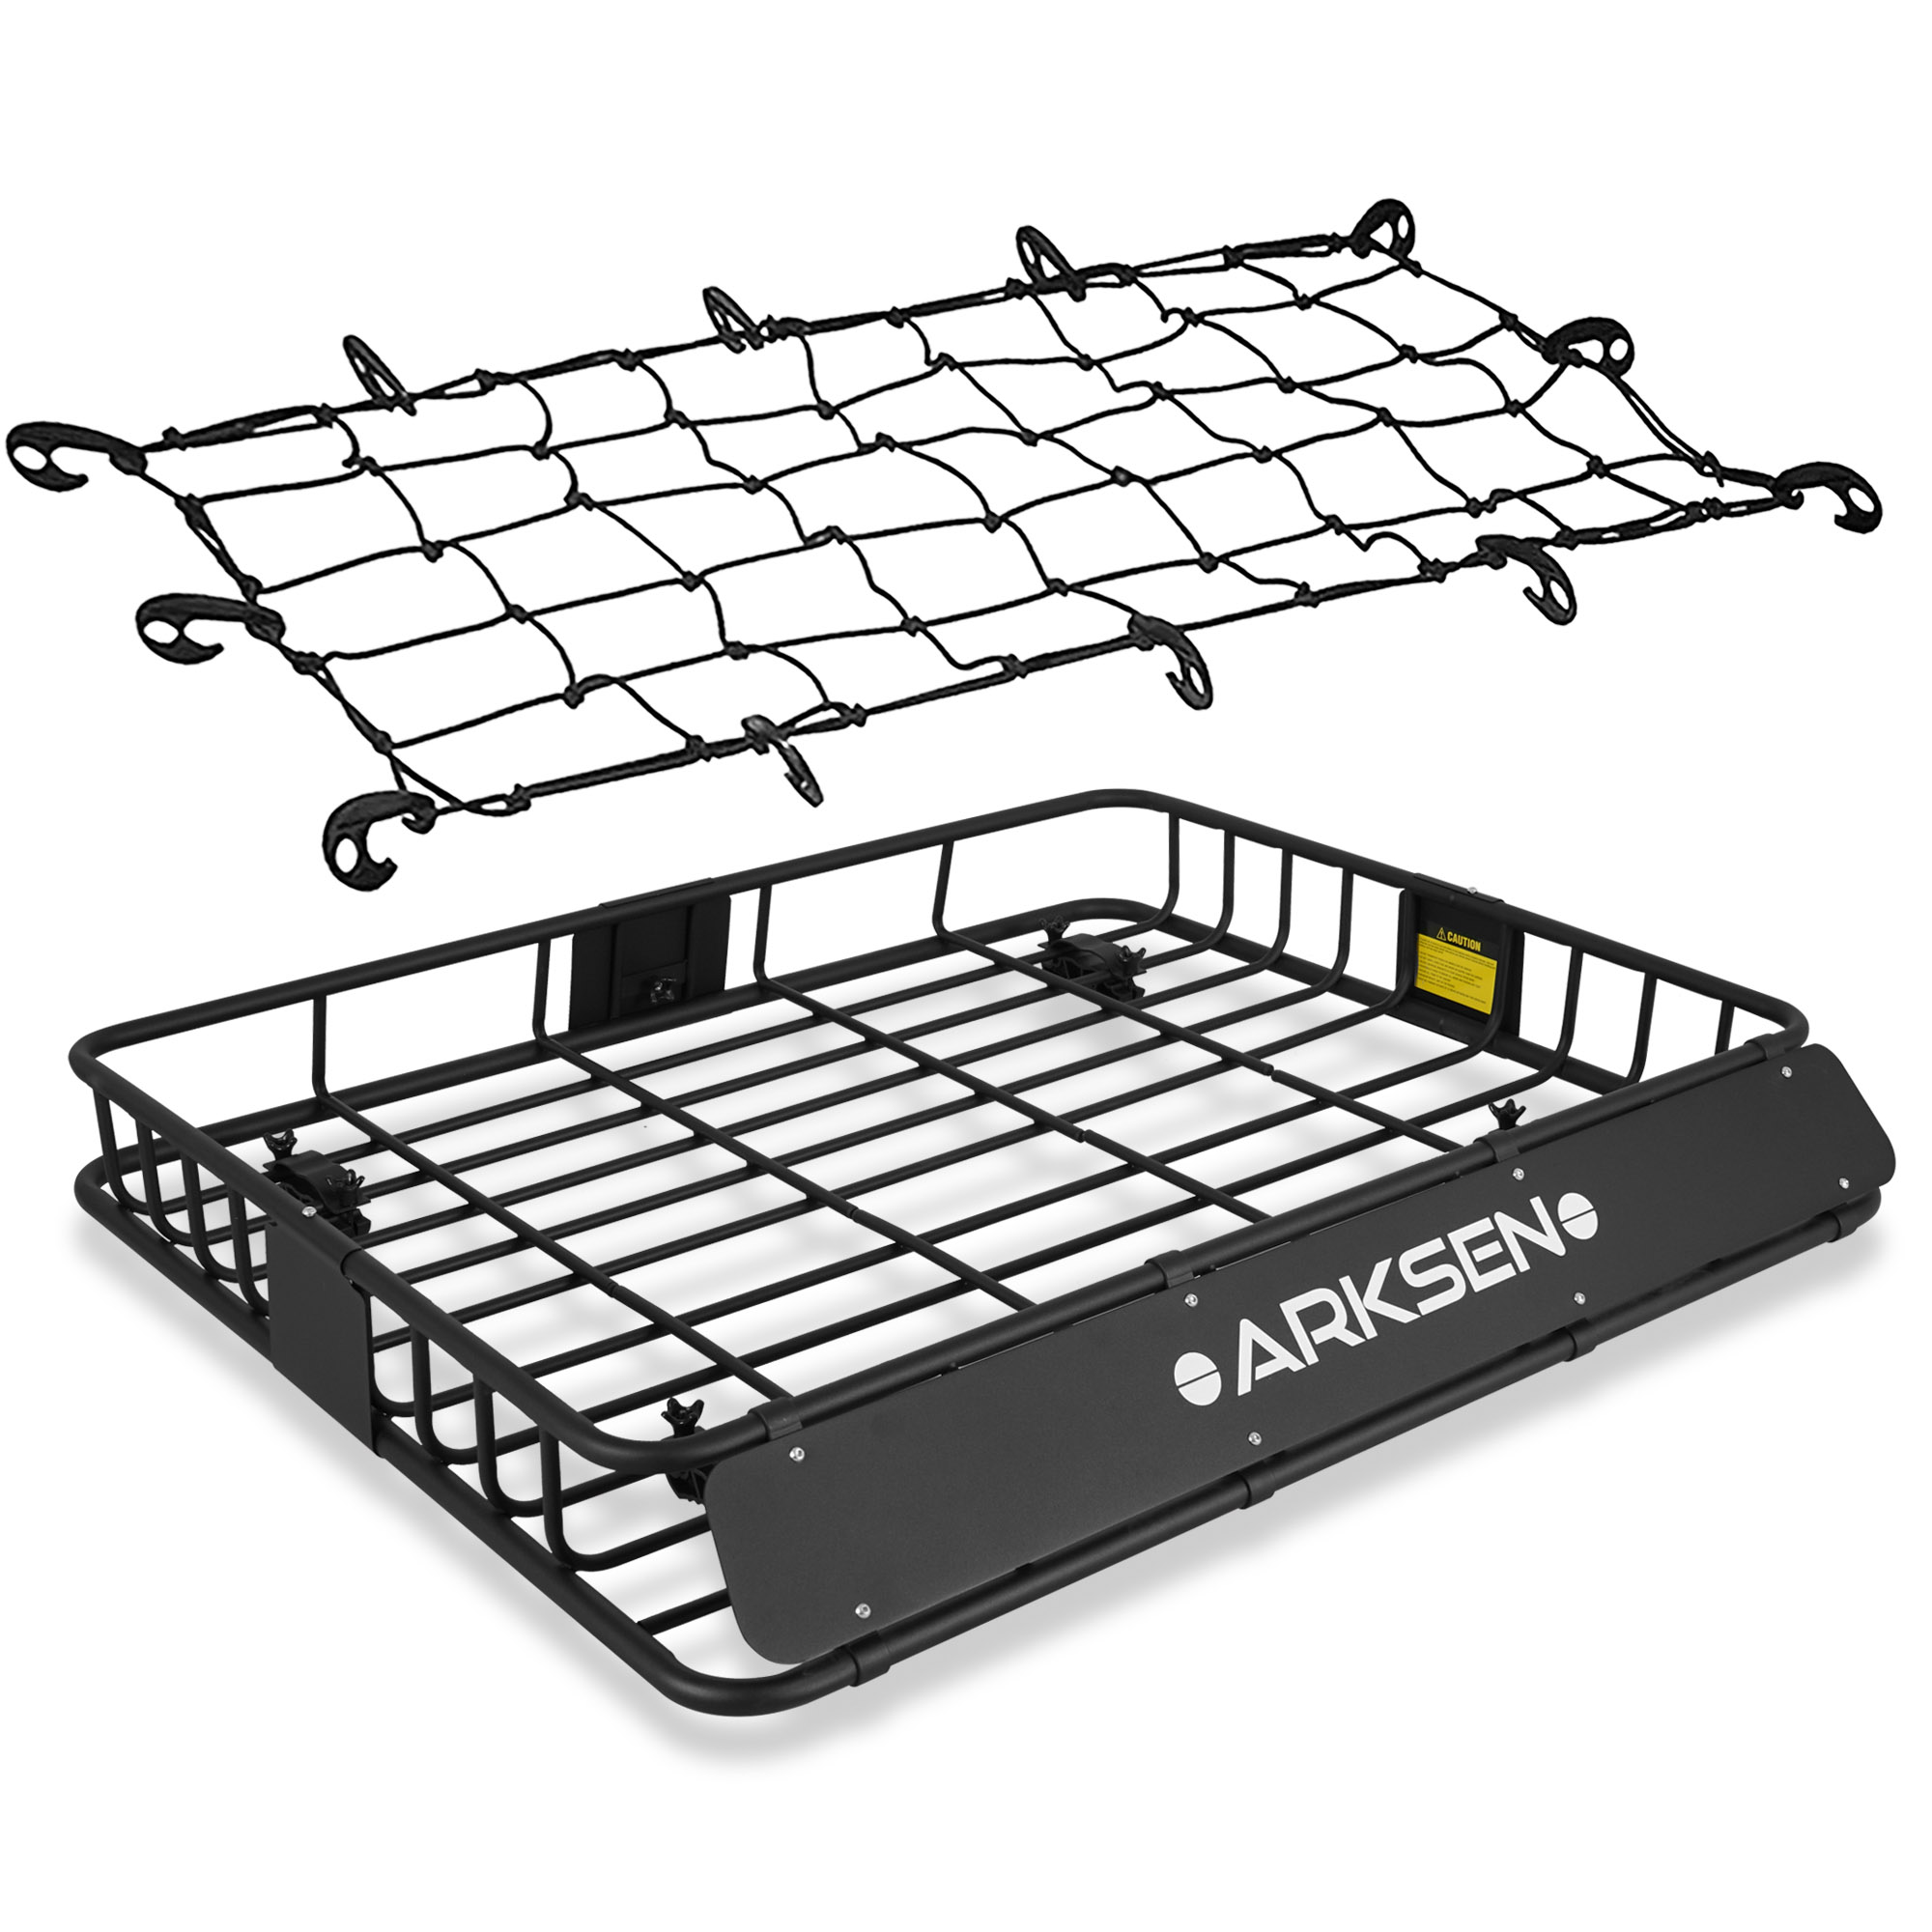 arksen perfect wide roof rack cargo basket 150 lb capacity full size truck suv top luggage holder carrier storage black